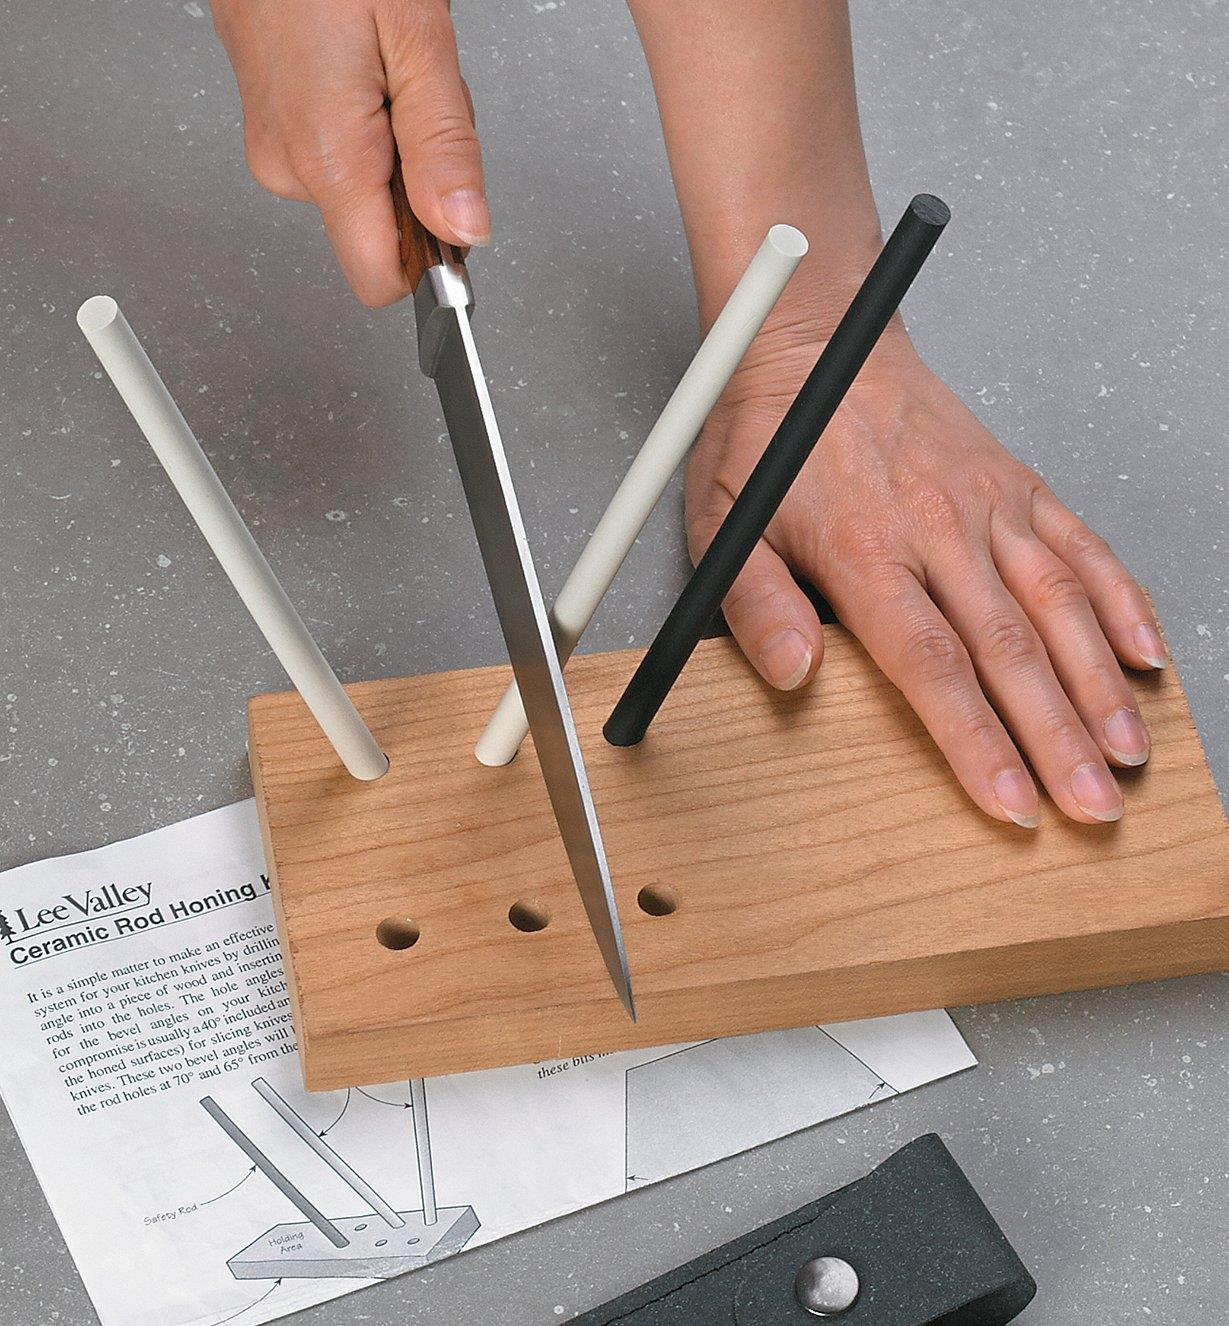 Sharpening a knife on a completed Lee Valley Ceramic Rod Honing Kit with a wooden base